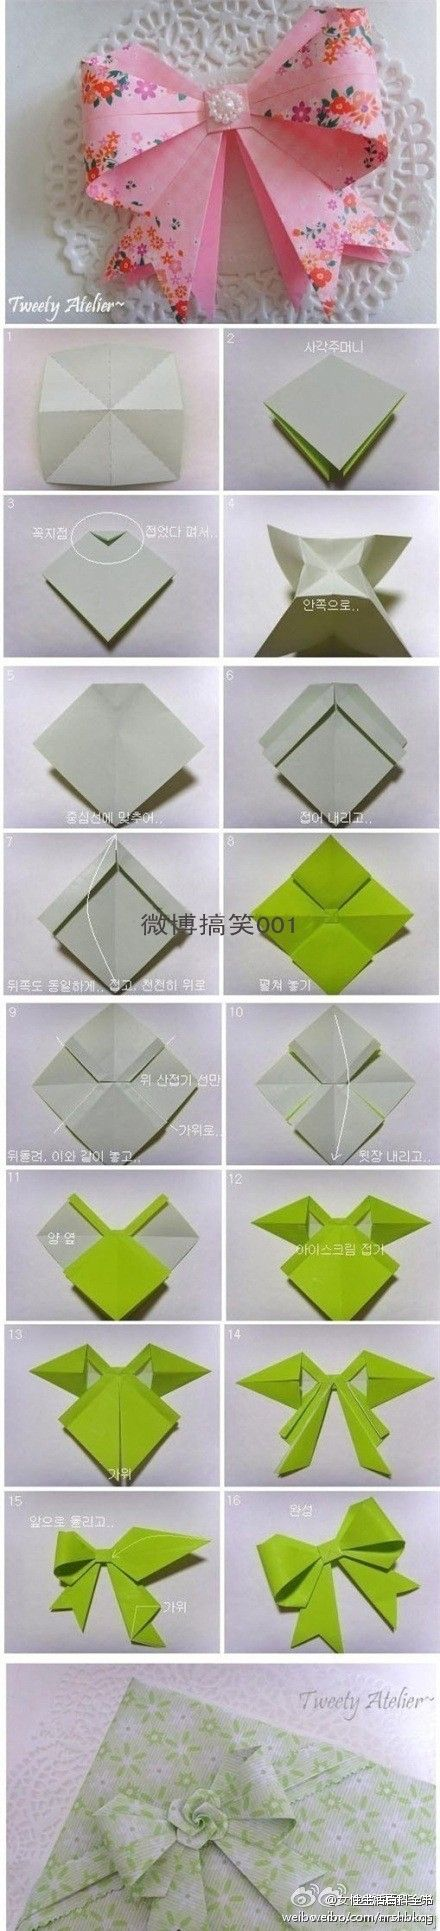 This is kind of intense origami...